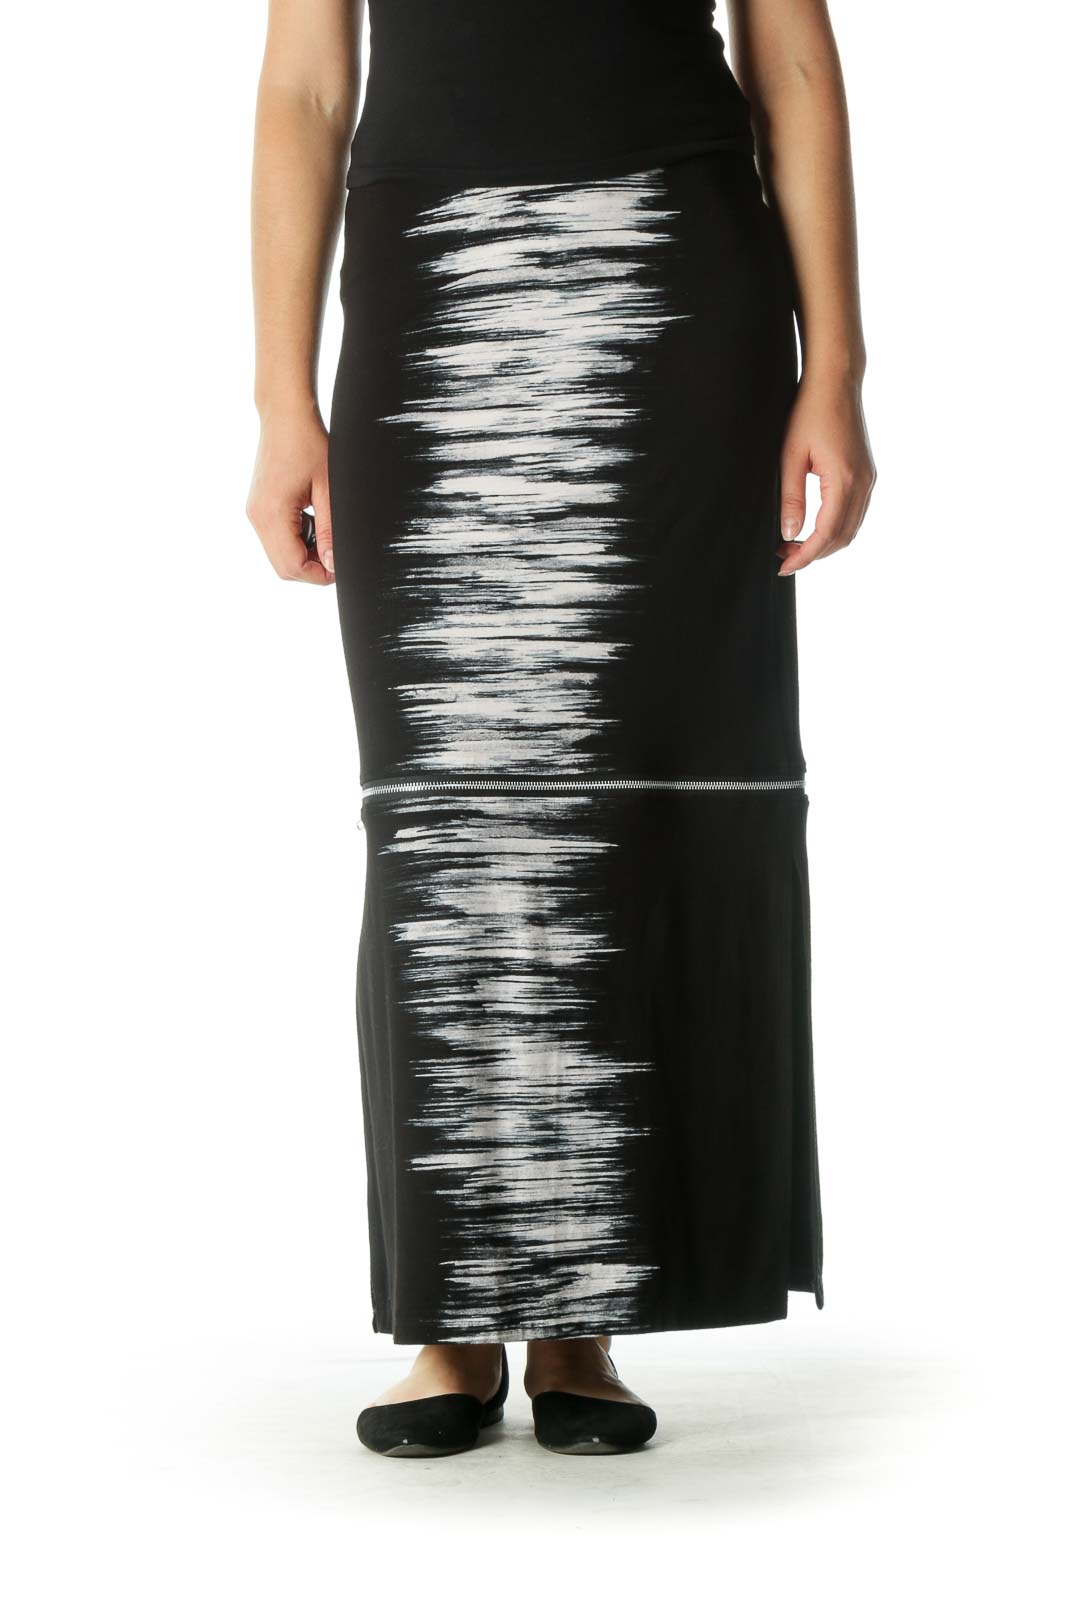 Black and White Zippered Maxi Skirt